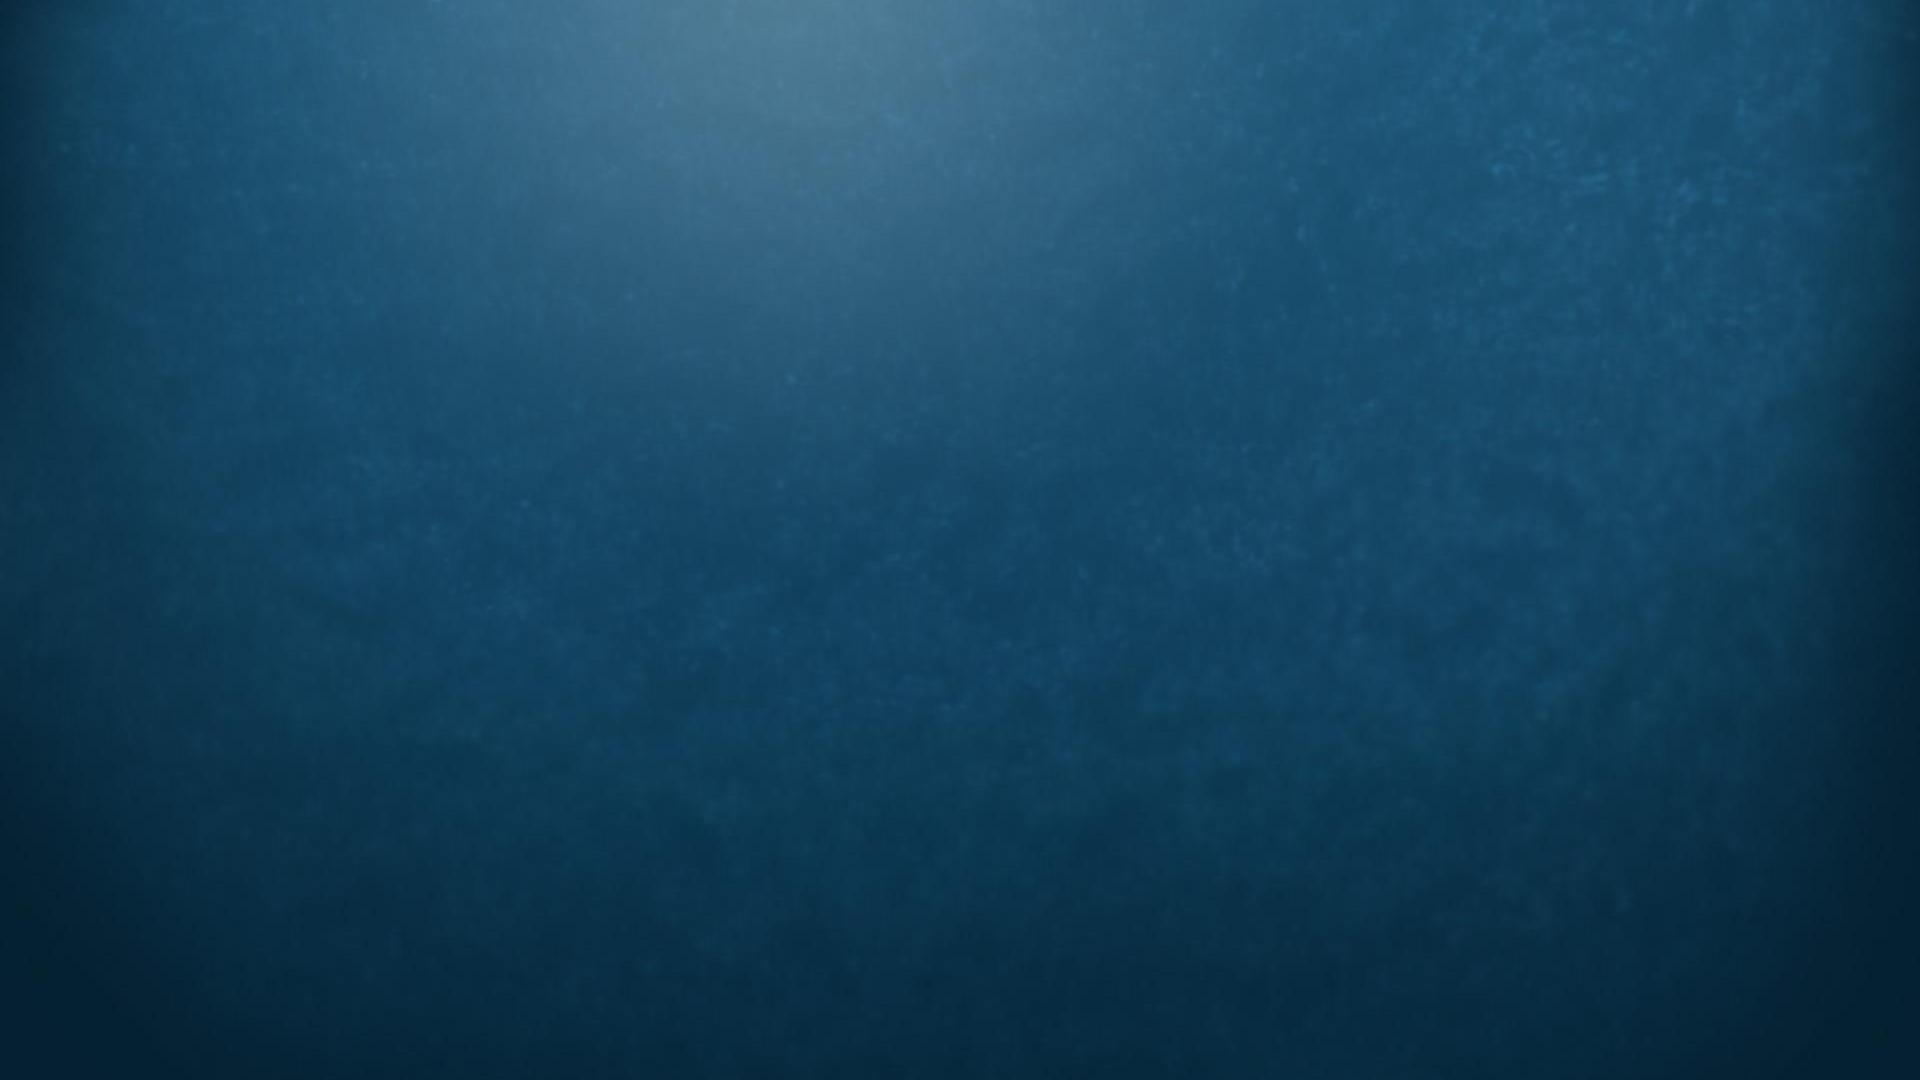 solid blue wallpaper hd